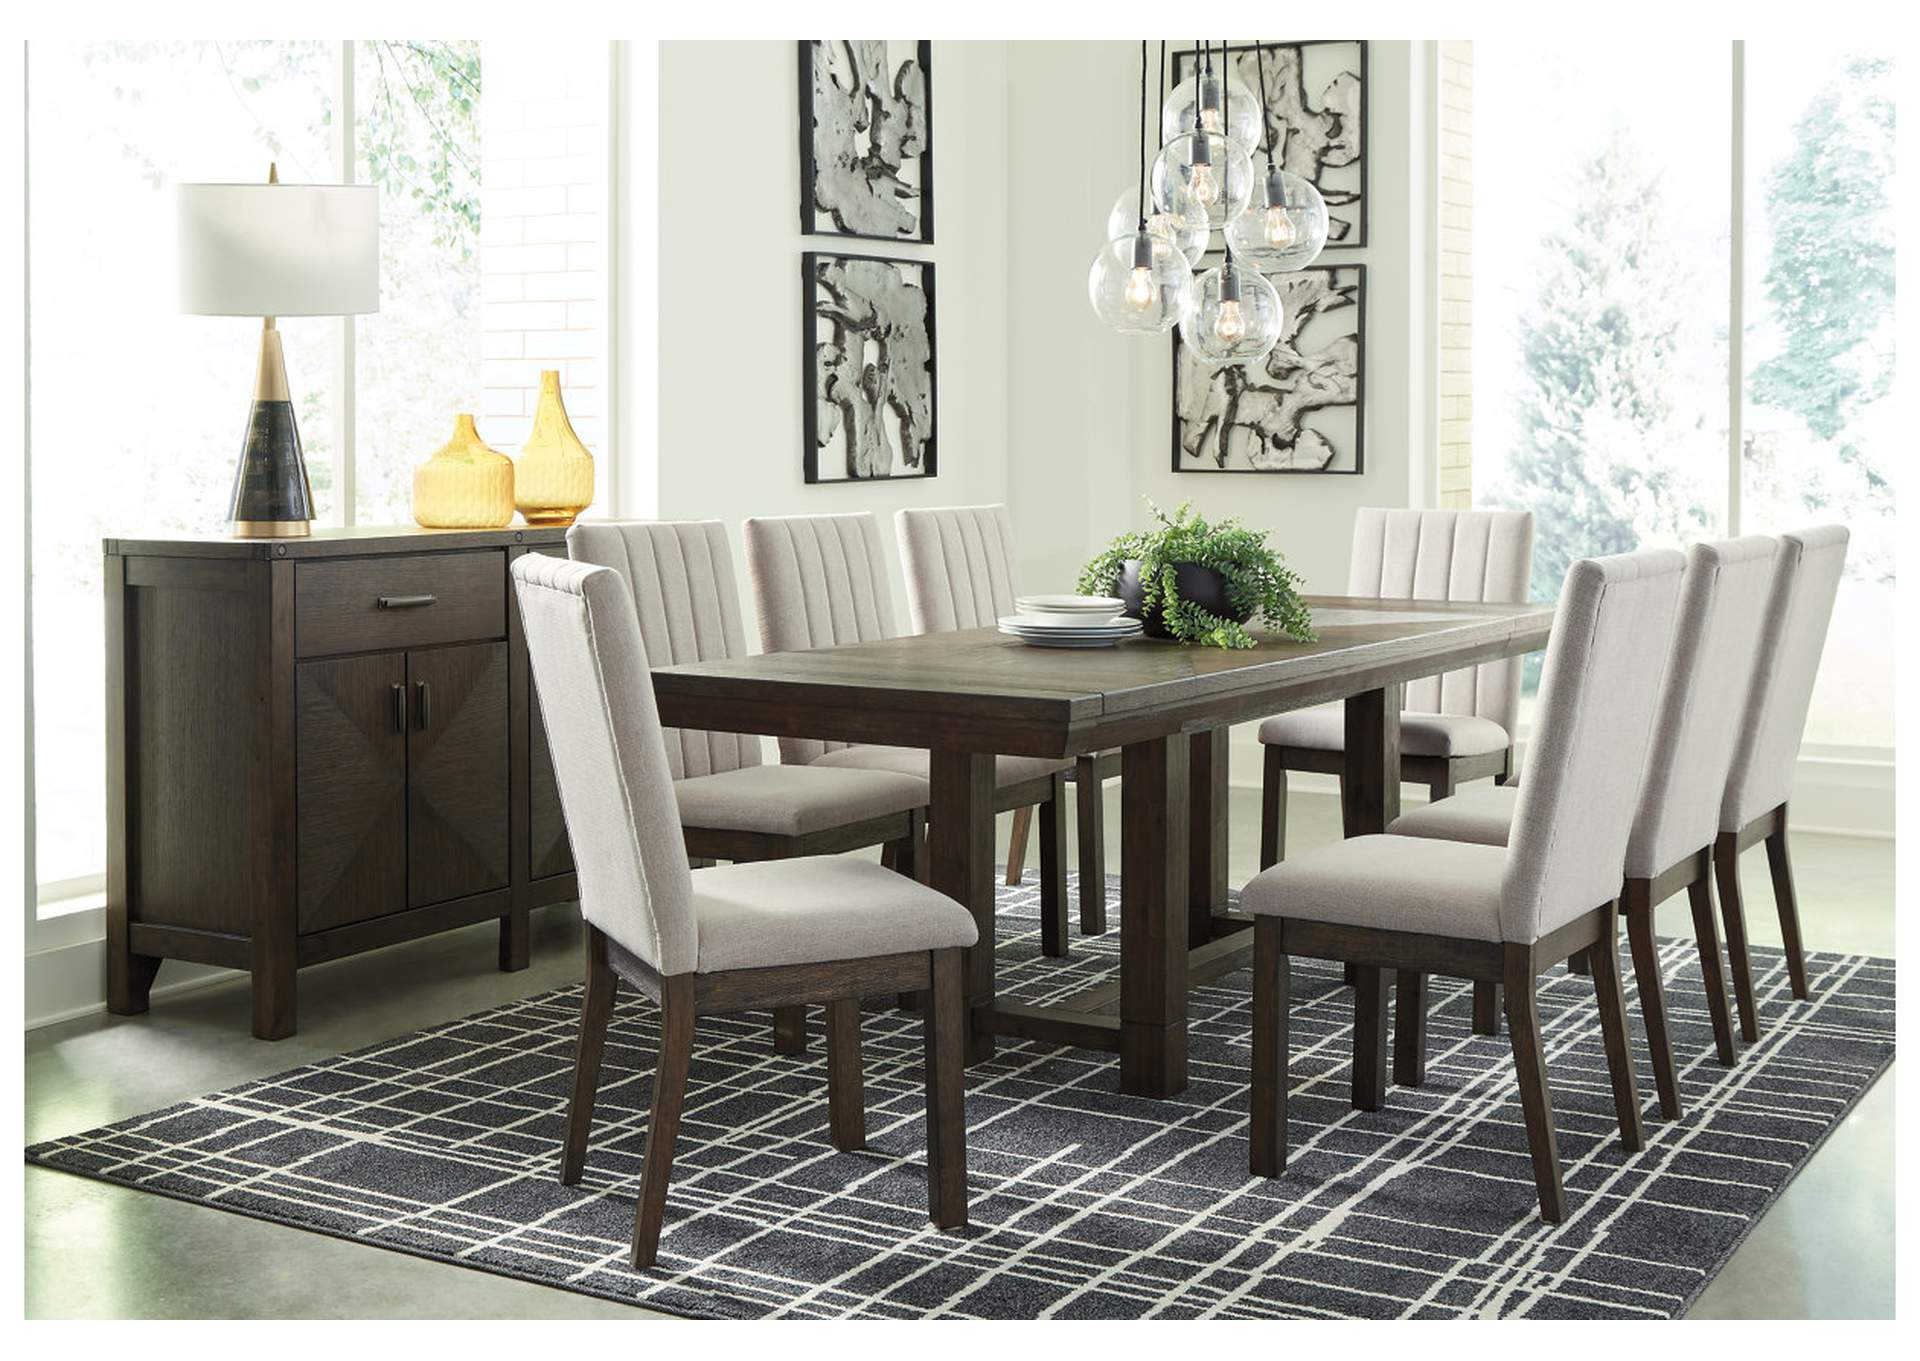 Dellbeck Dining Table W 8 Side Chair Ashley Furniture Homestore Independently Owned And Operated By Fairdeal Furniture